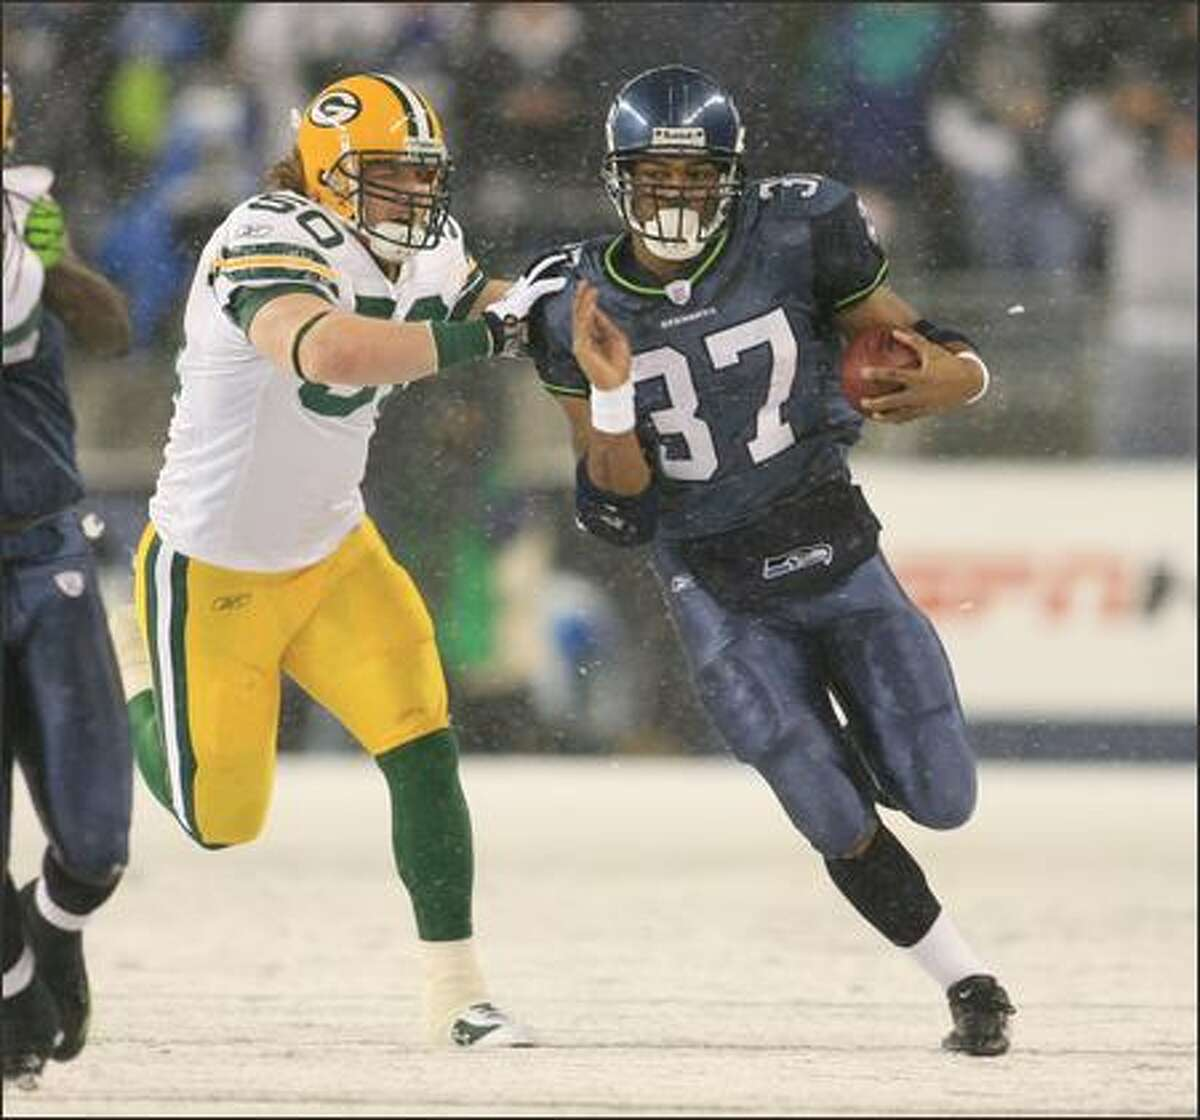 Seattle Seahawks running back Shaun Alexander is pursued by Green Bay Packers linebacker AJ Hawk while running for an 18-yard gain before being pushed out of bounds during first quarter play at Qwest Field in Seattle on Monday.